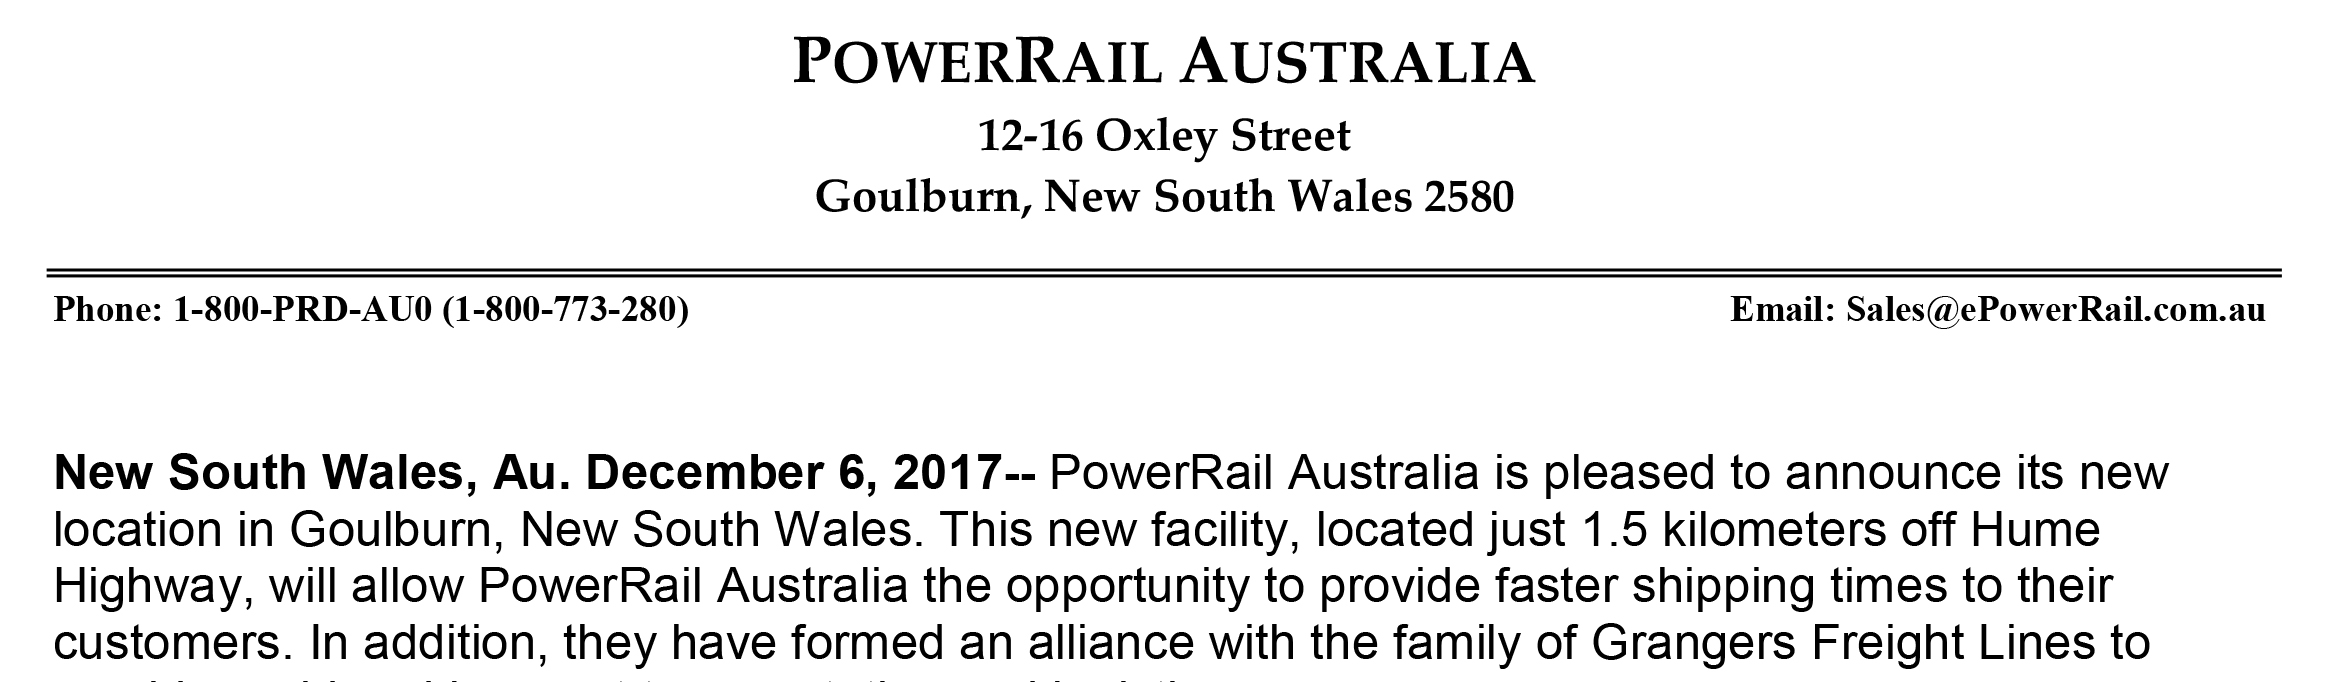 PowerRail Australia Moves to New Location